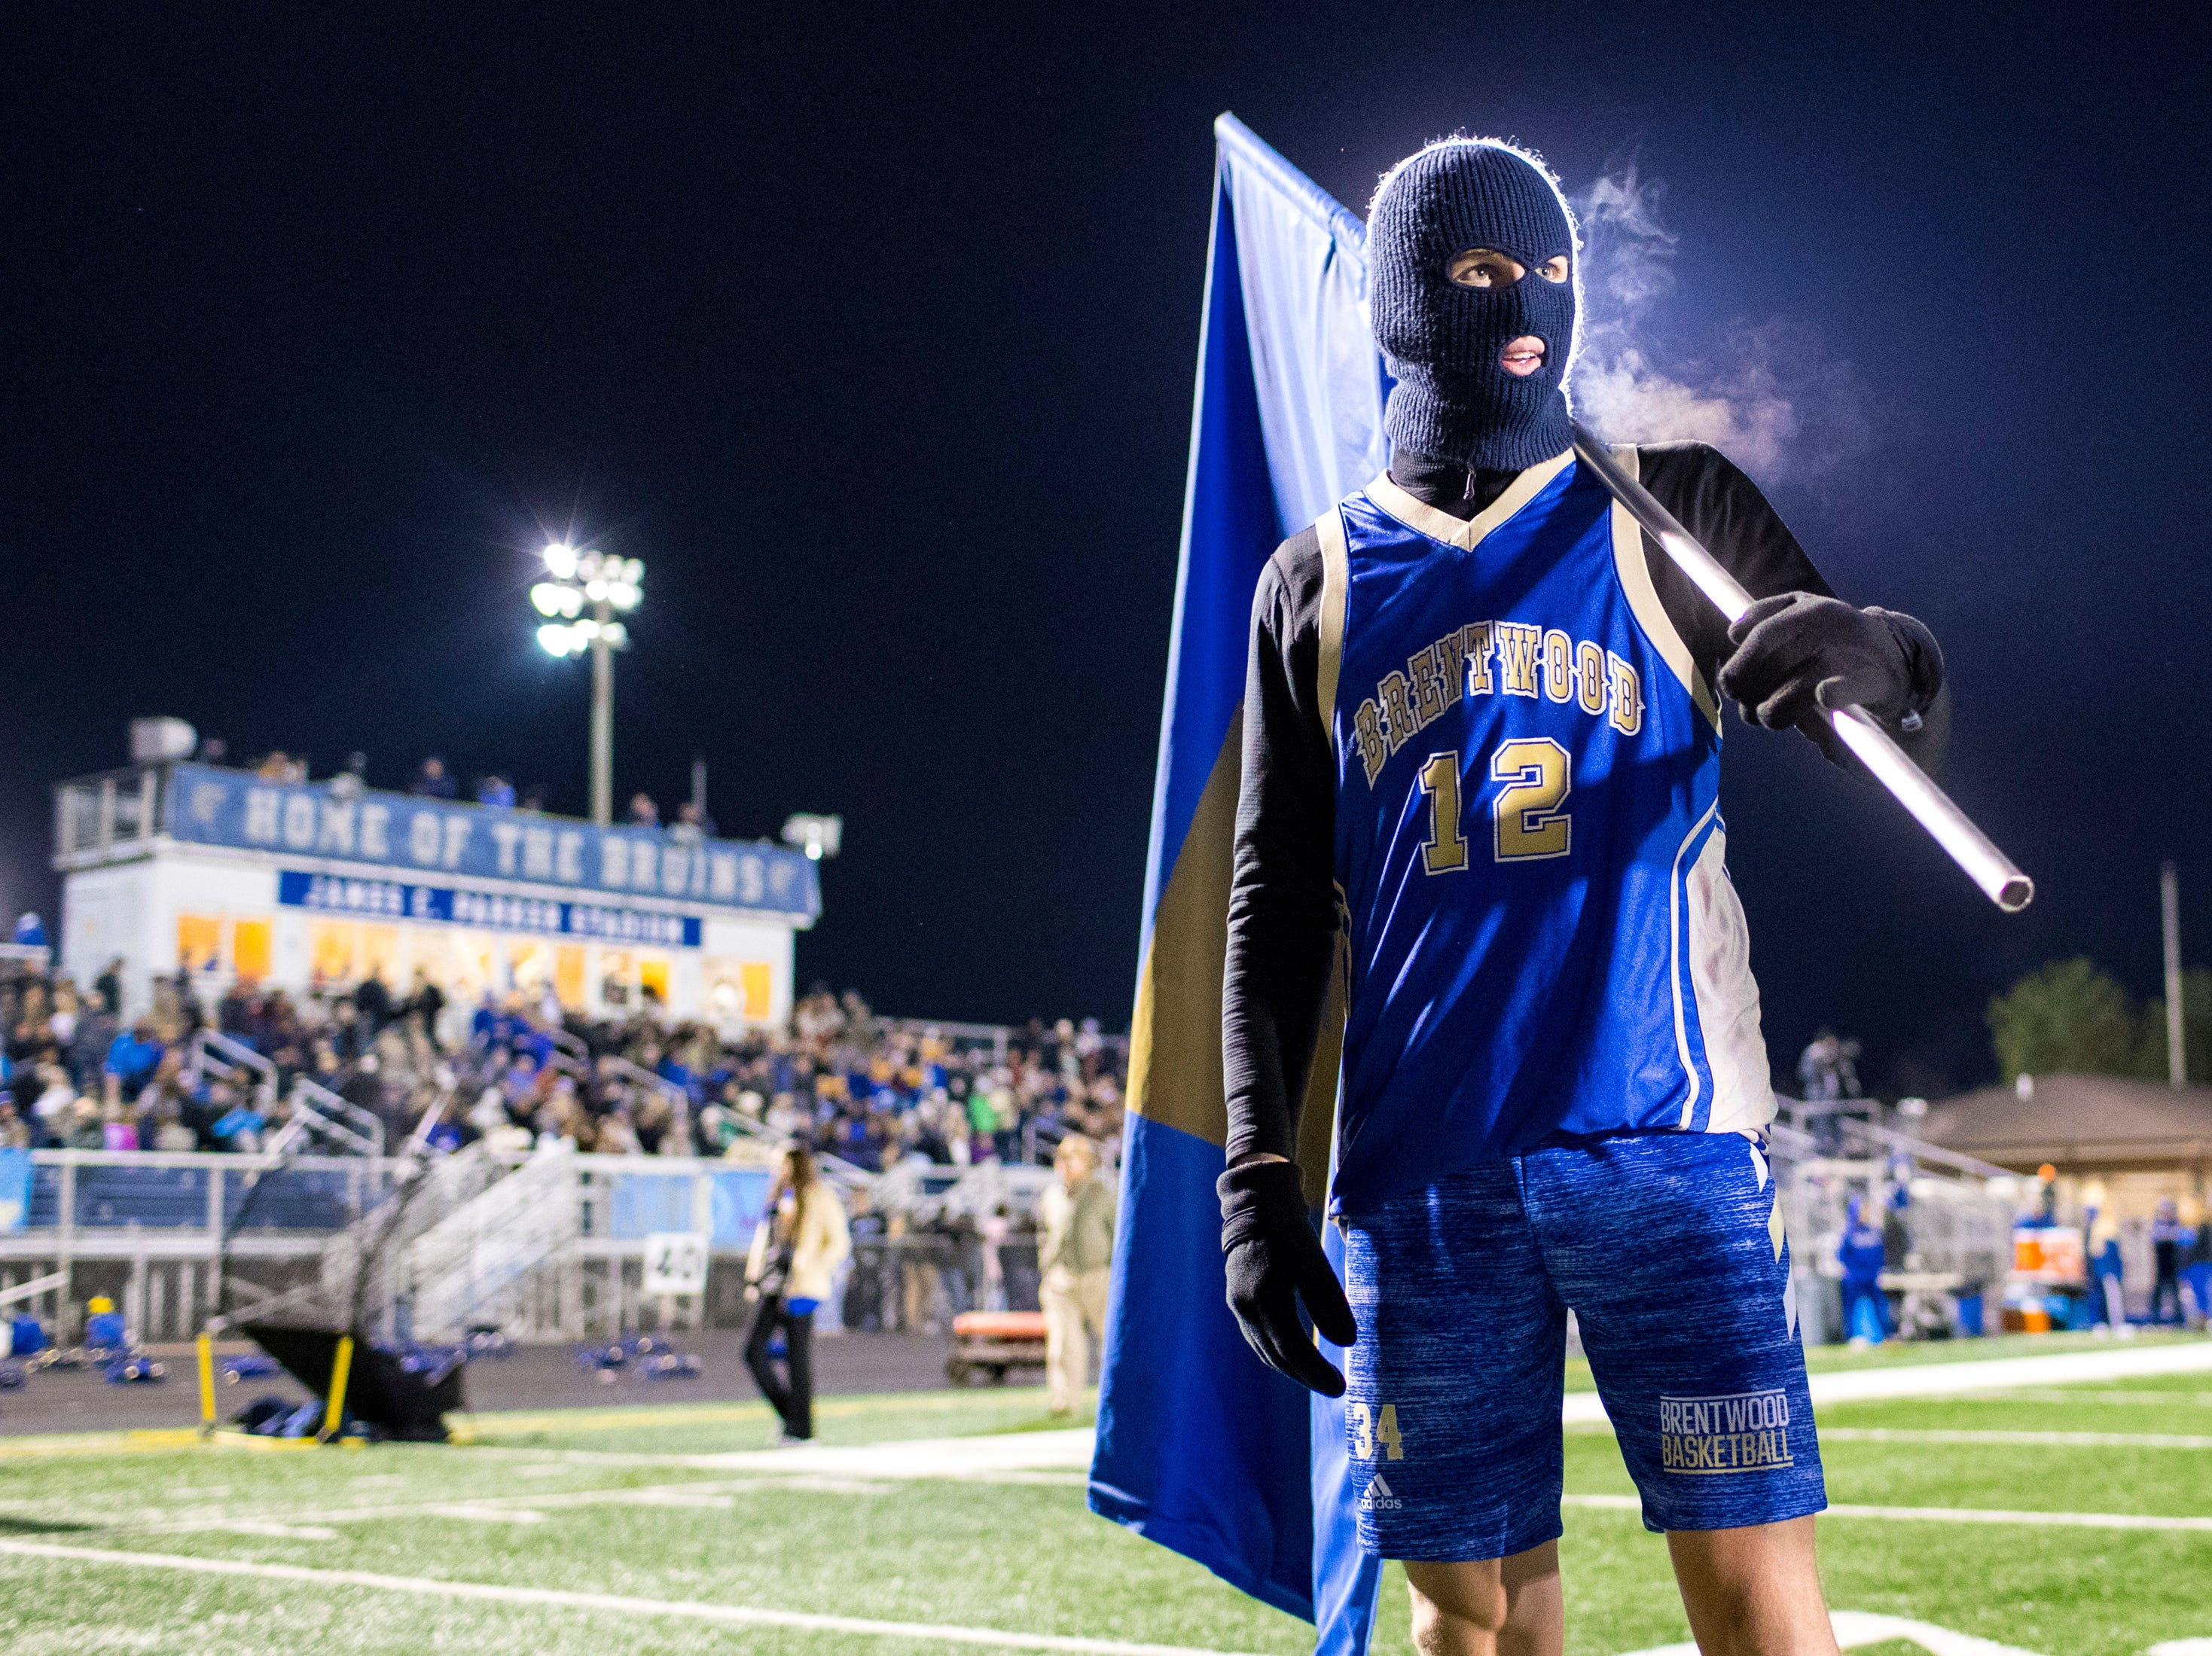 Ben Mills prepares to lead Brentwood's players on to the field before Brentwood's game against Ravenwood at Brentwood High School in Brentwood on Friday, Nov. 16, 2018.